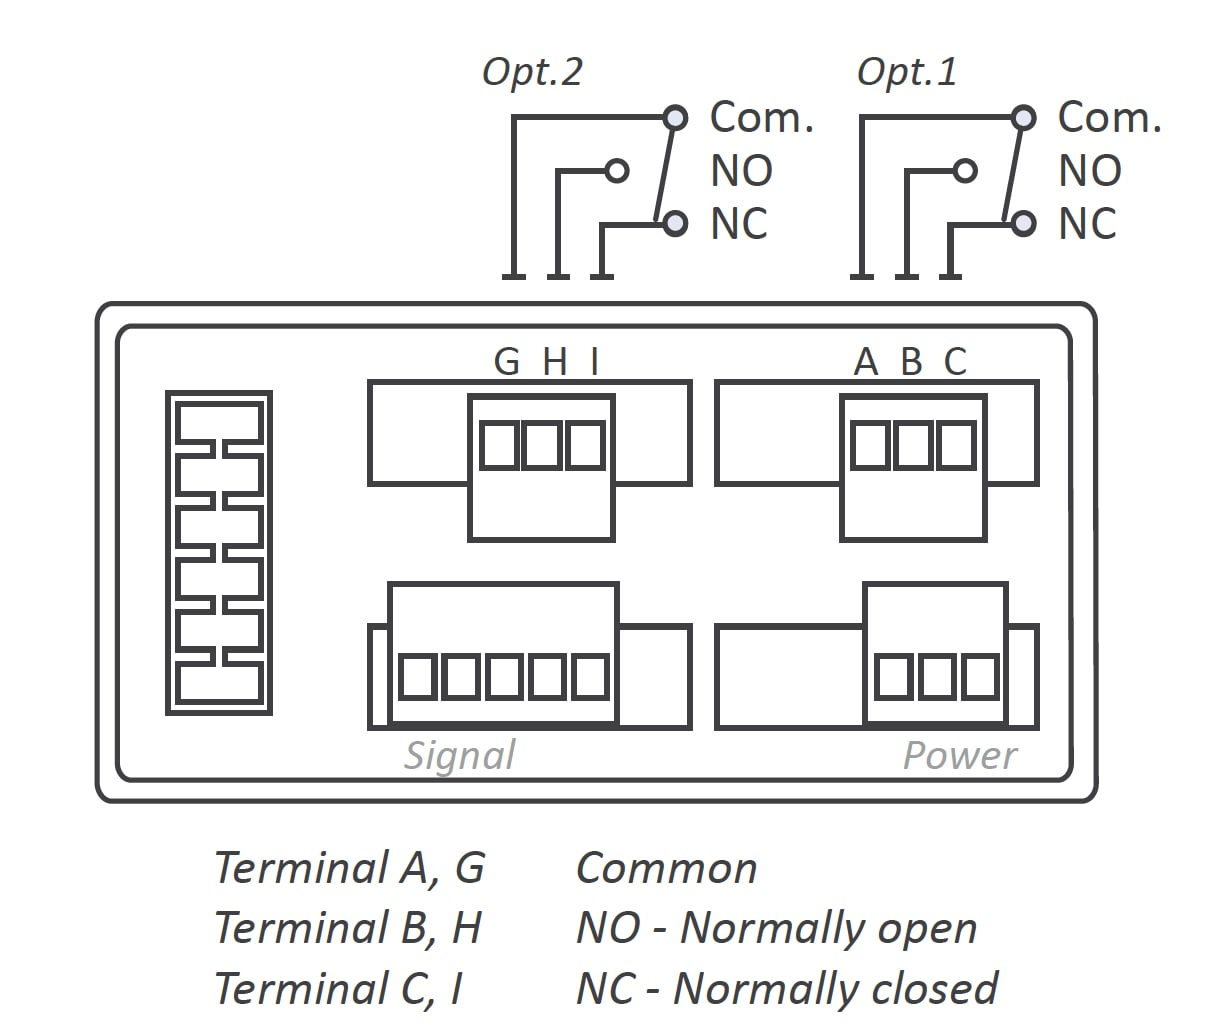 Wiring Diagram For One Normally Open 3wire Float Switch With Isolated